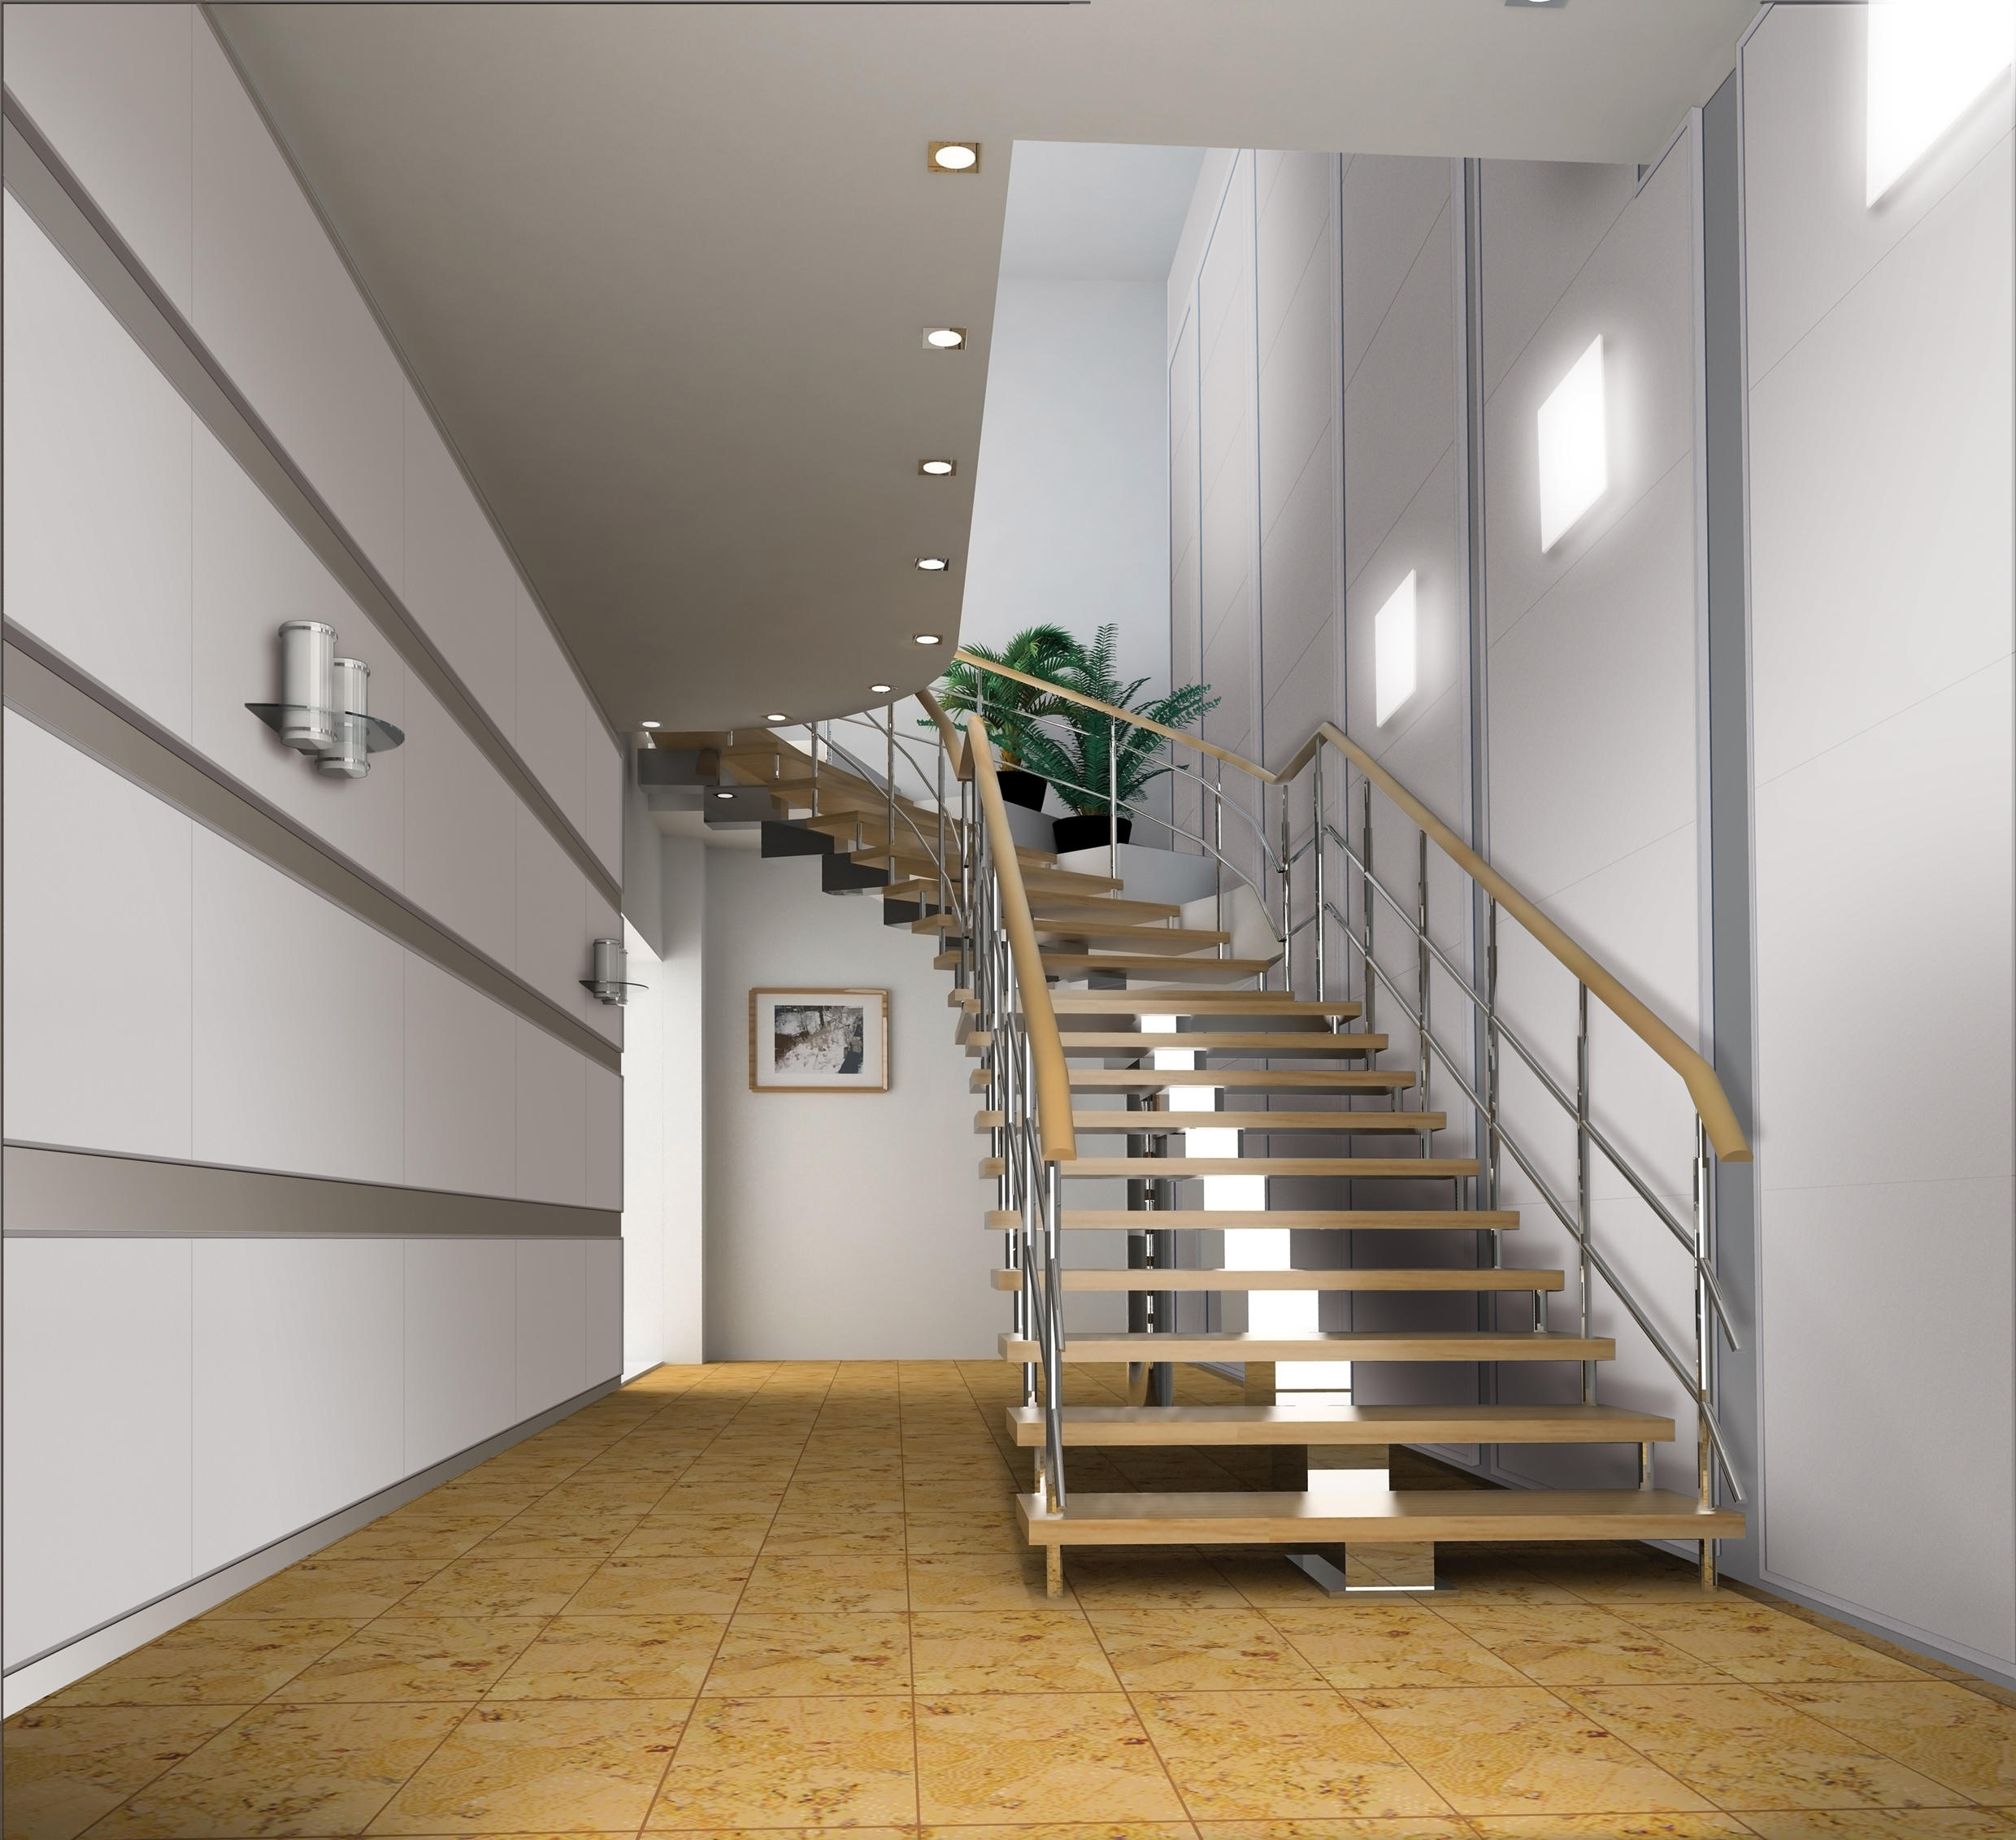 nw of floor dreams pin natural stairway the to coeur with ceilings paneling foyer street ceiling mon at